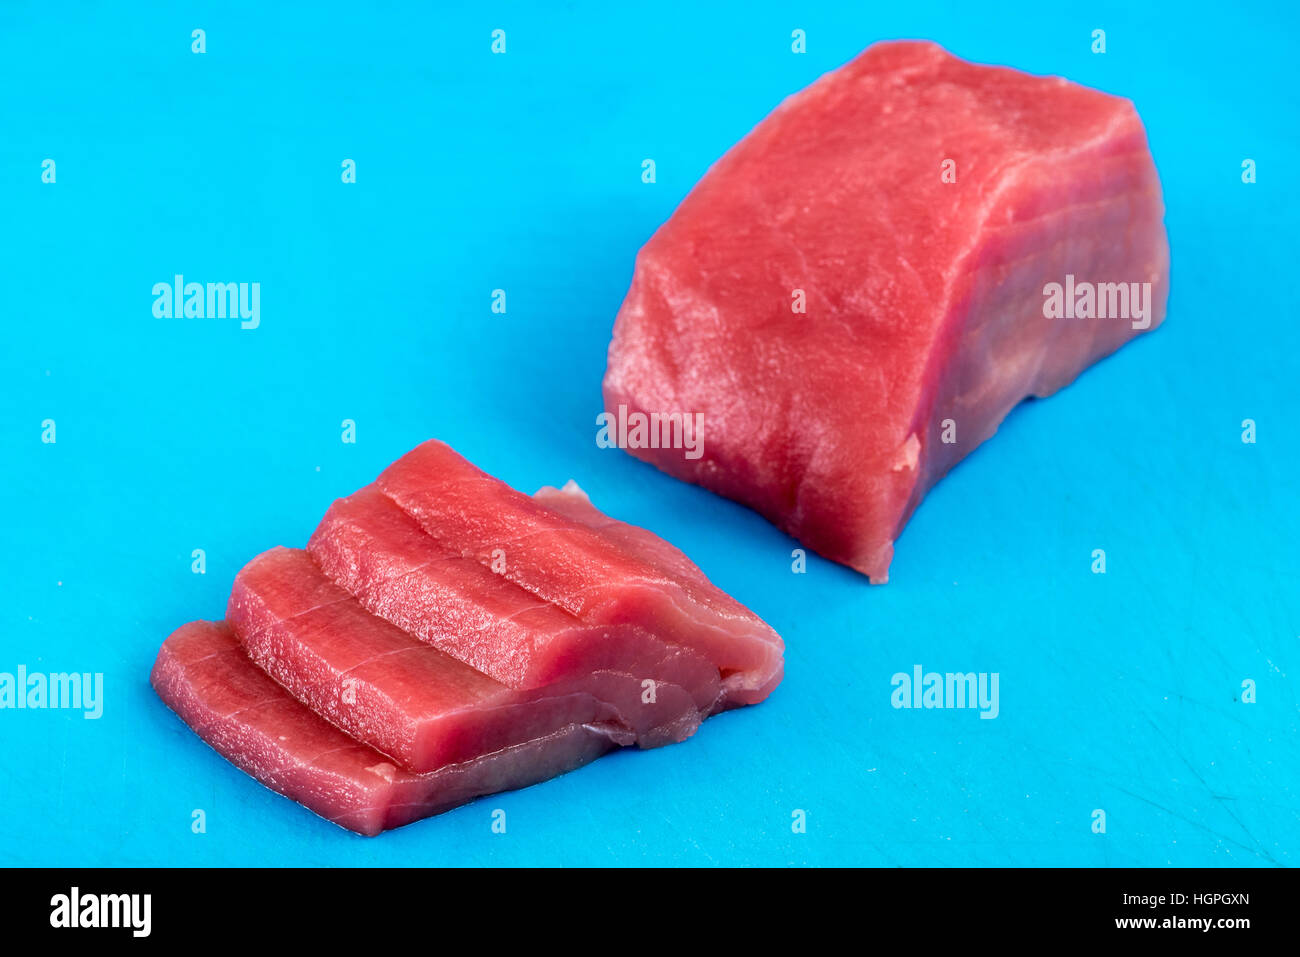 Sliced fresh raw tuna fillet or steak for use in Japanese sushi and sashimi arranged diagonally on a blue background - Stock Image